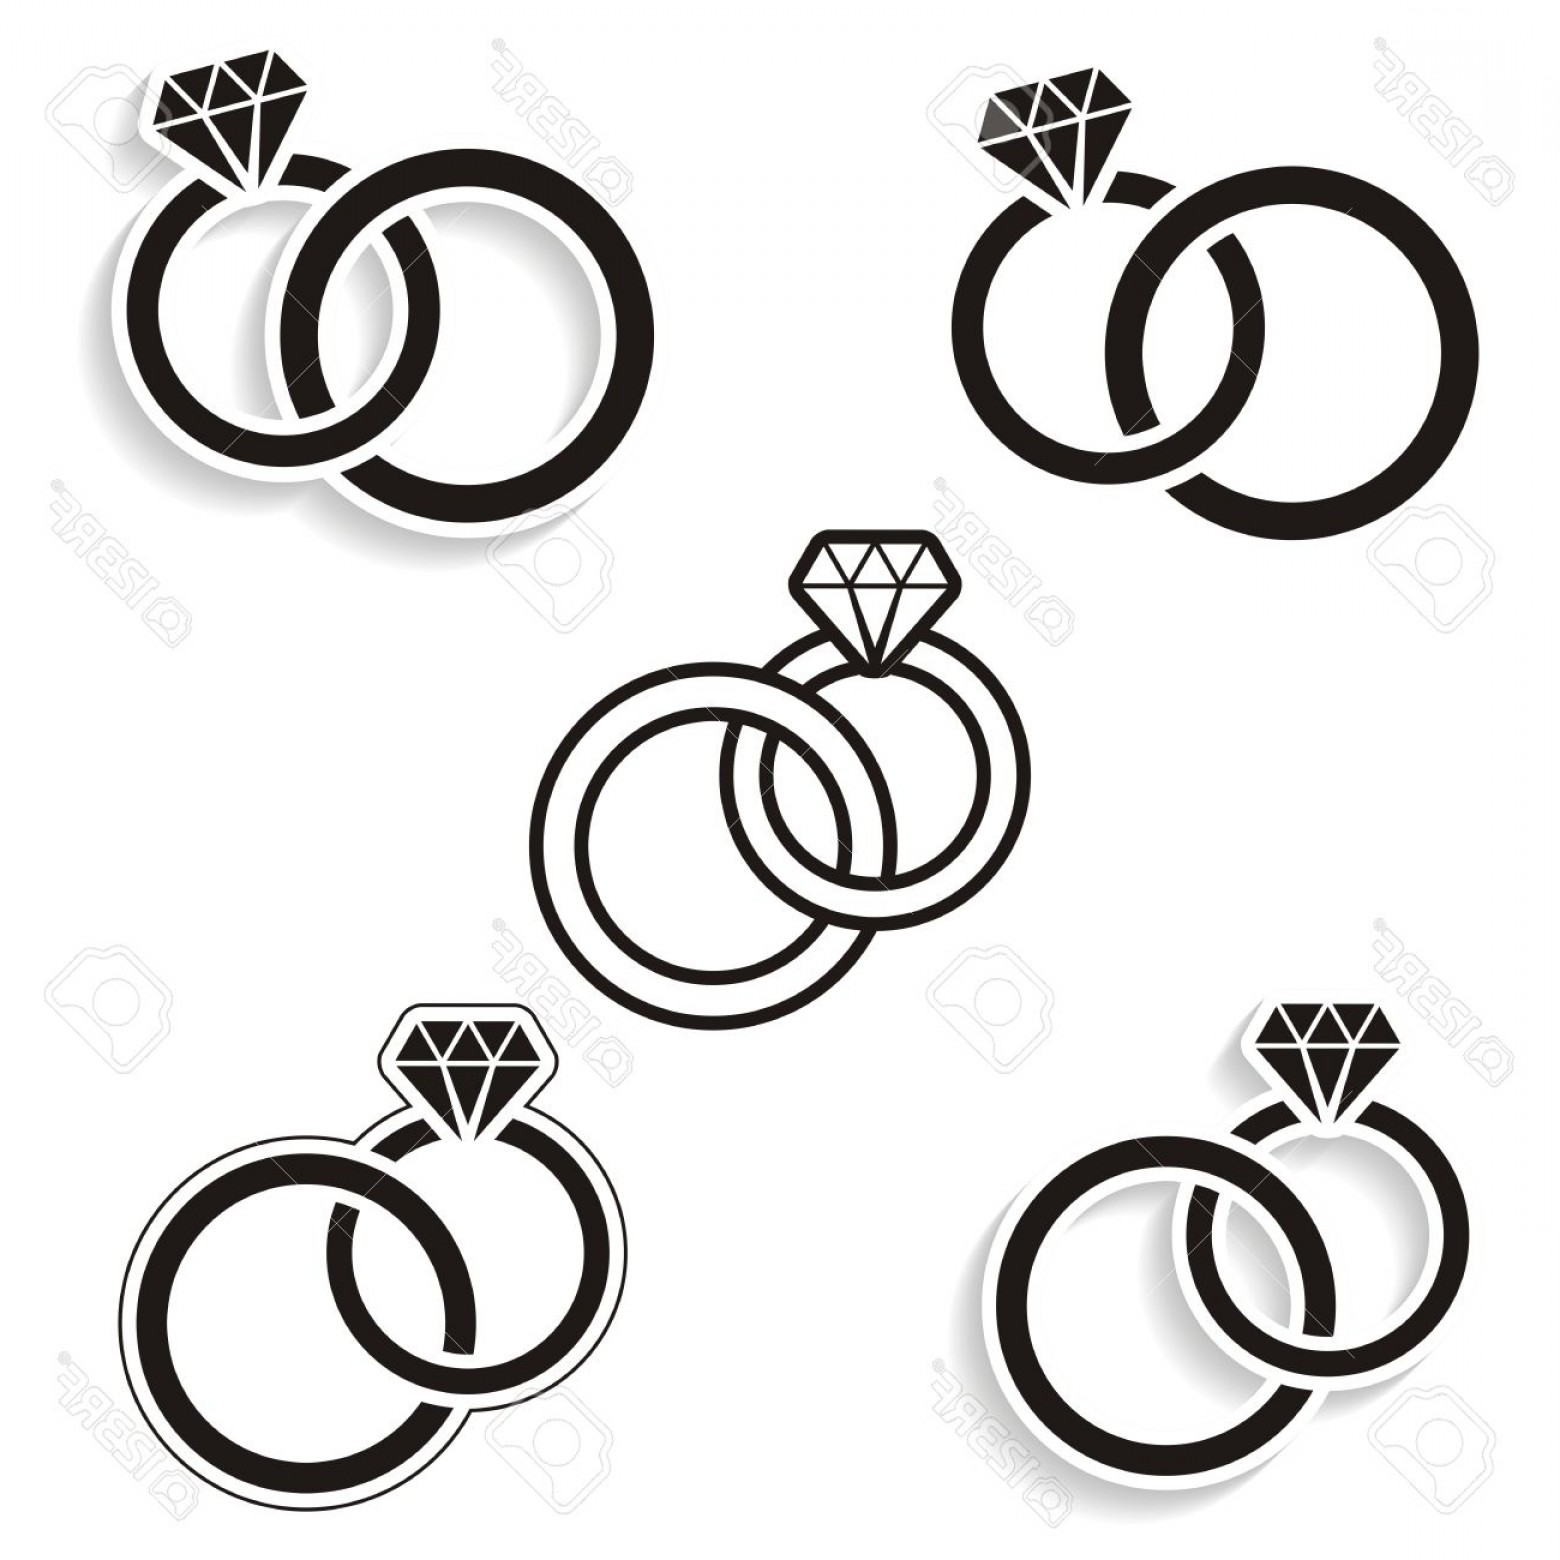 1560x1560 Ring Drawing Entwined For Free Download